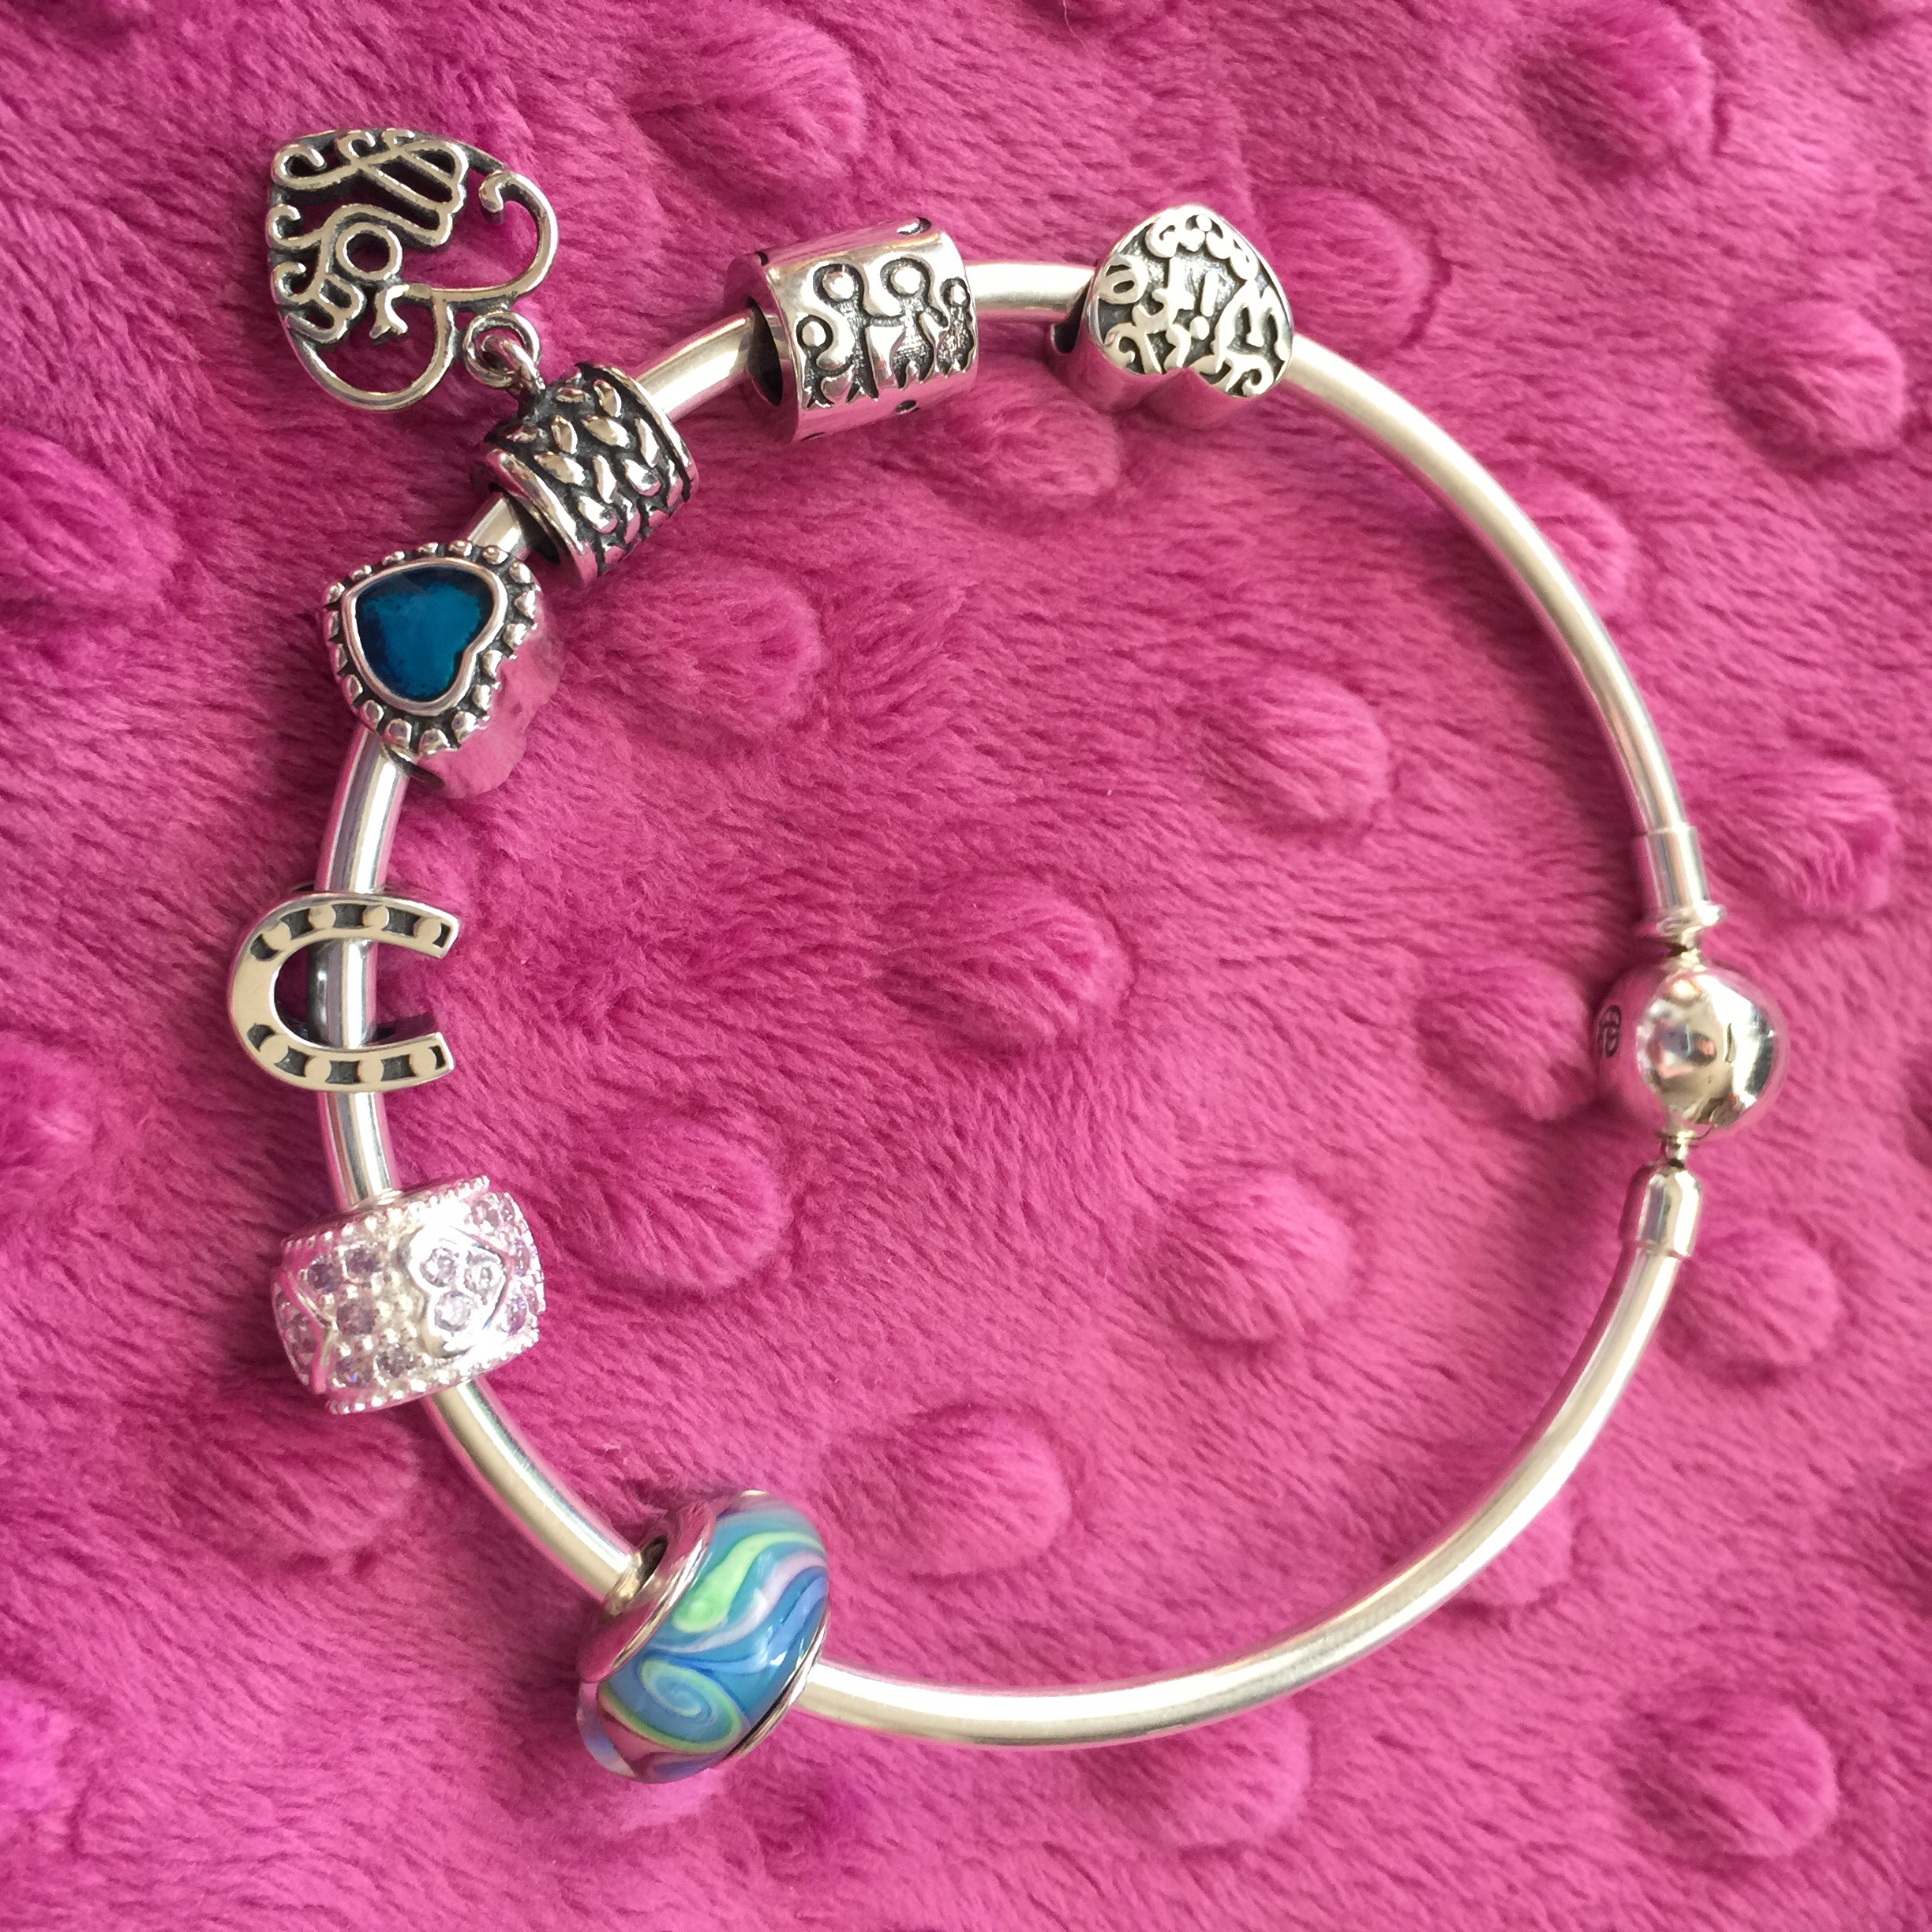 bring k smile mothers colors her your gold day to with and eyes plated on several this charm a face up bracelet charmulet light mom of vivid will special the charms year these